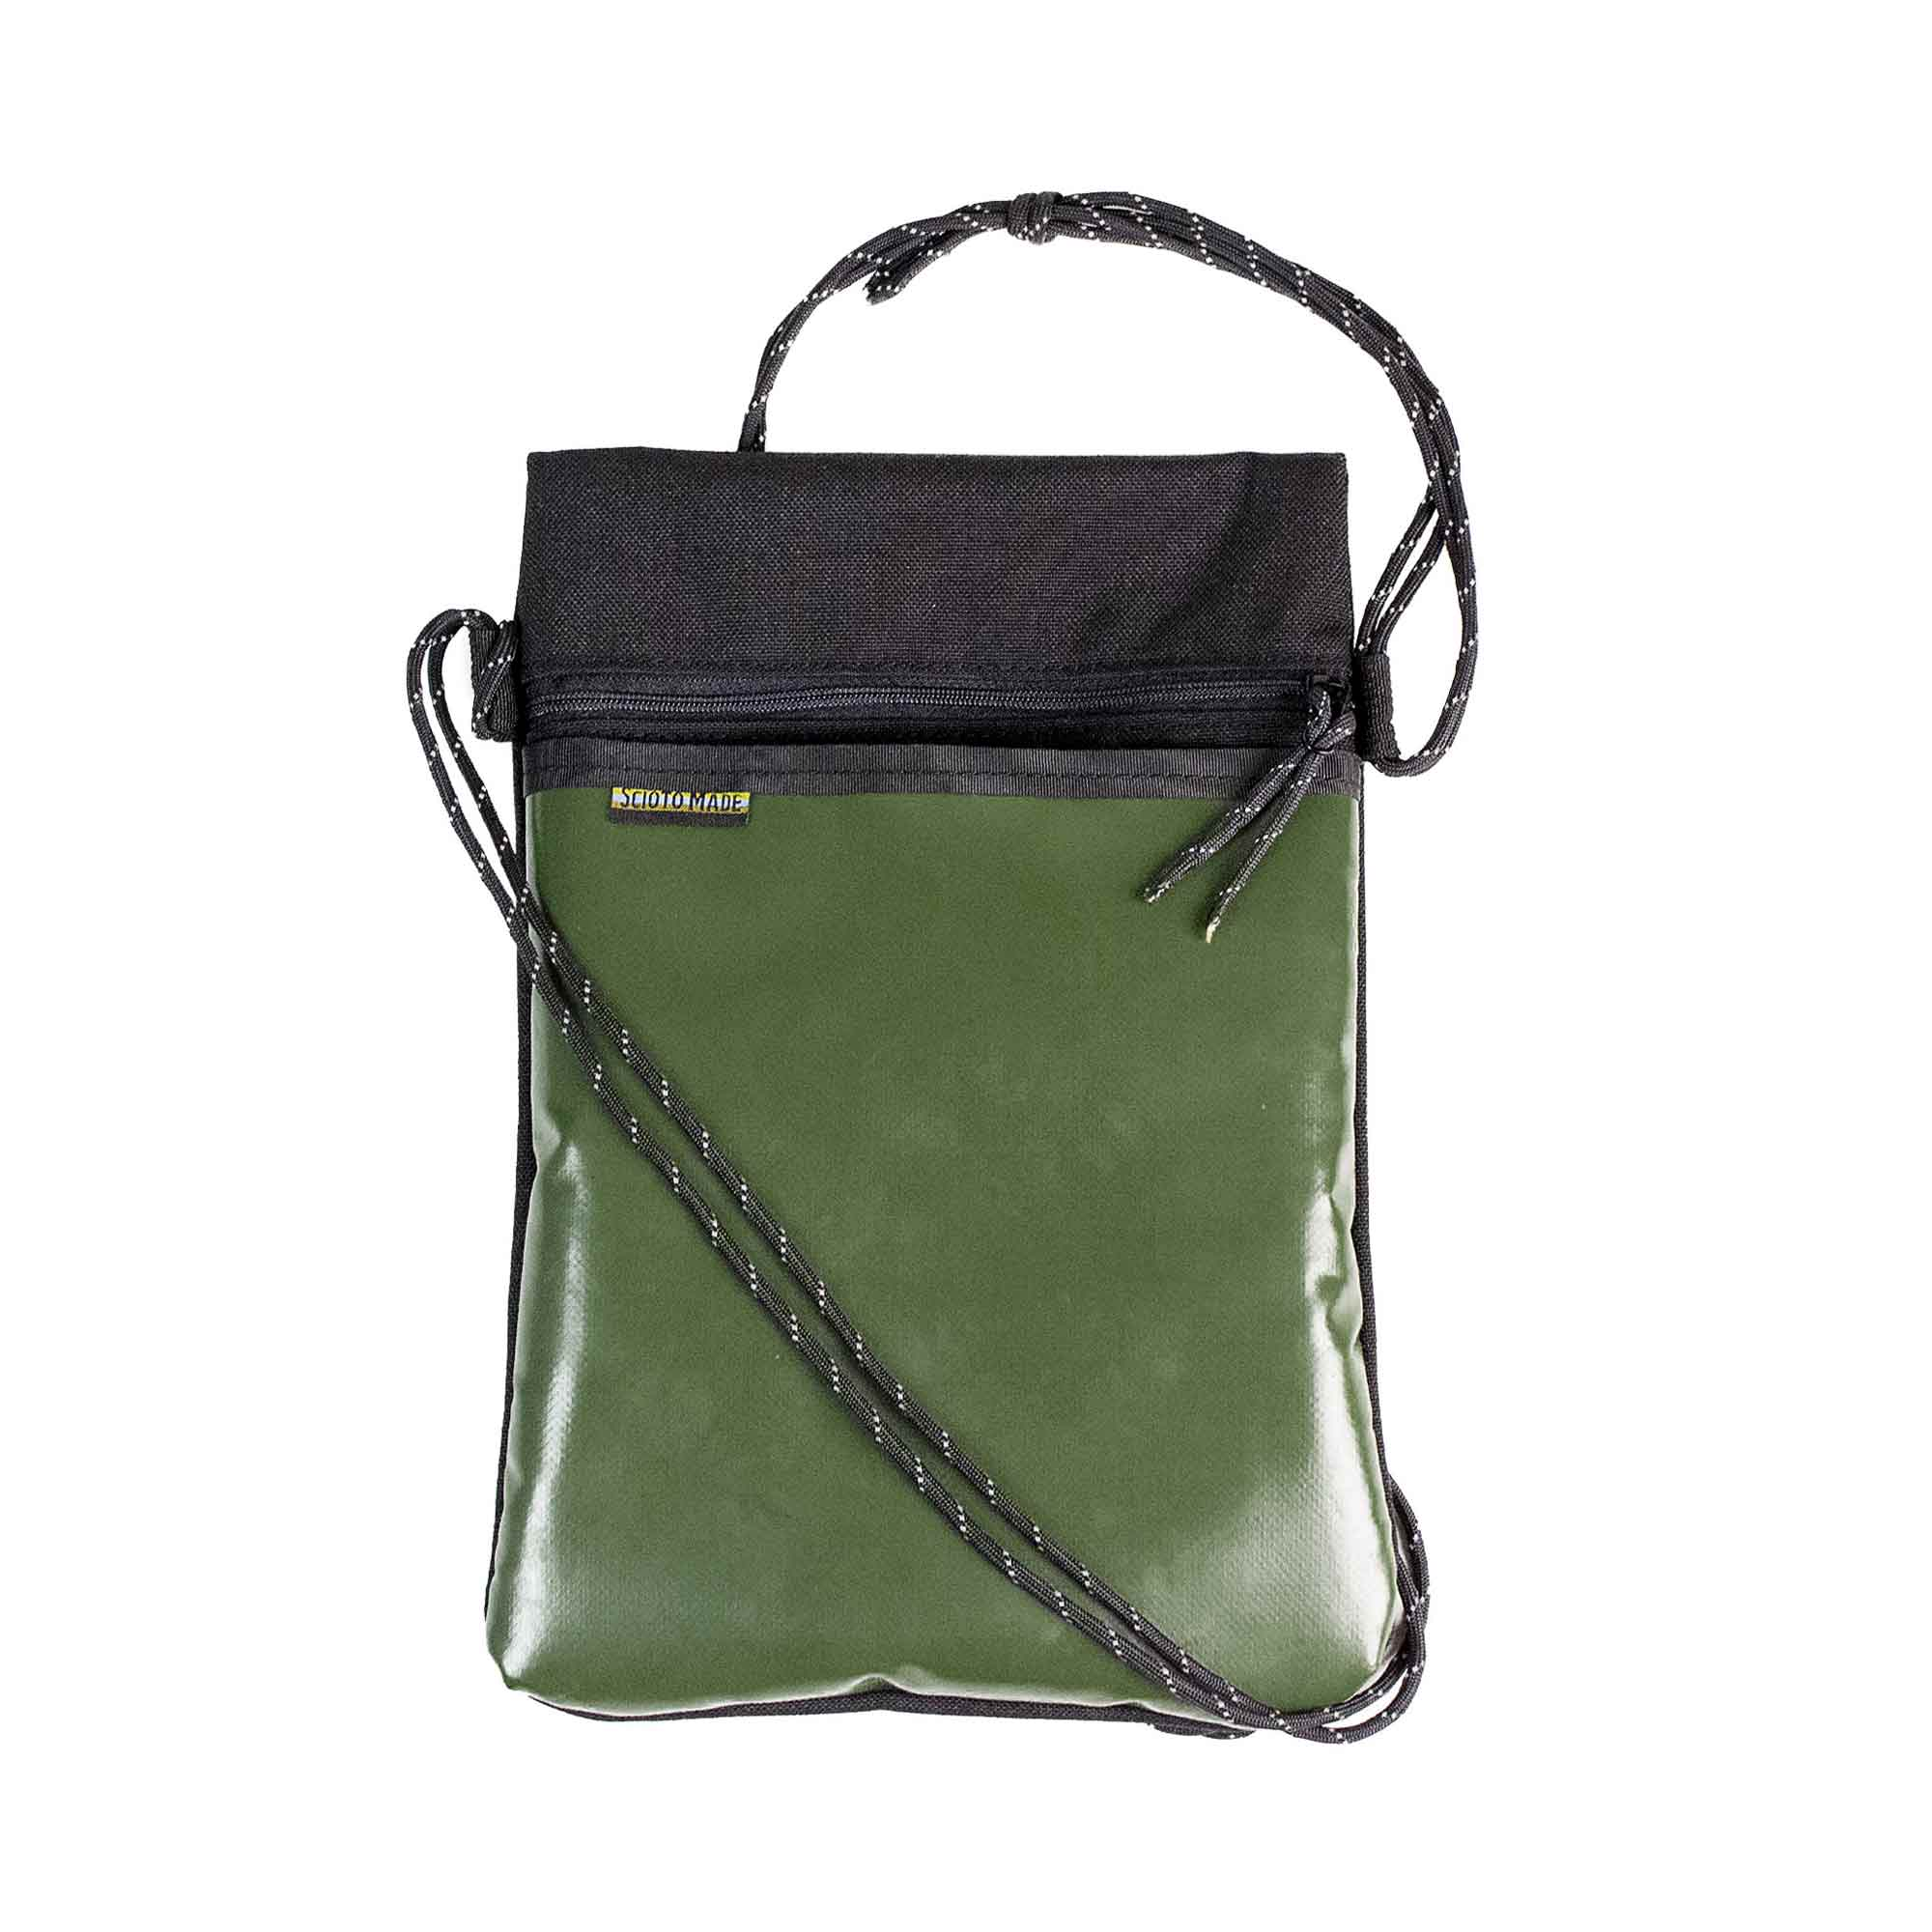 Scioto Made crossbody bag xover upcycled olive green army vinyl front view 01